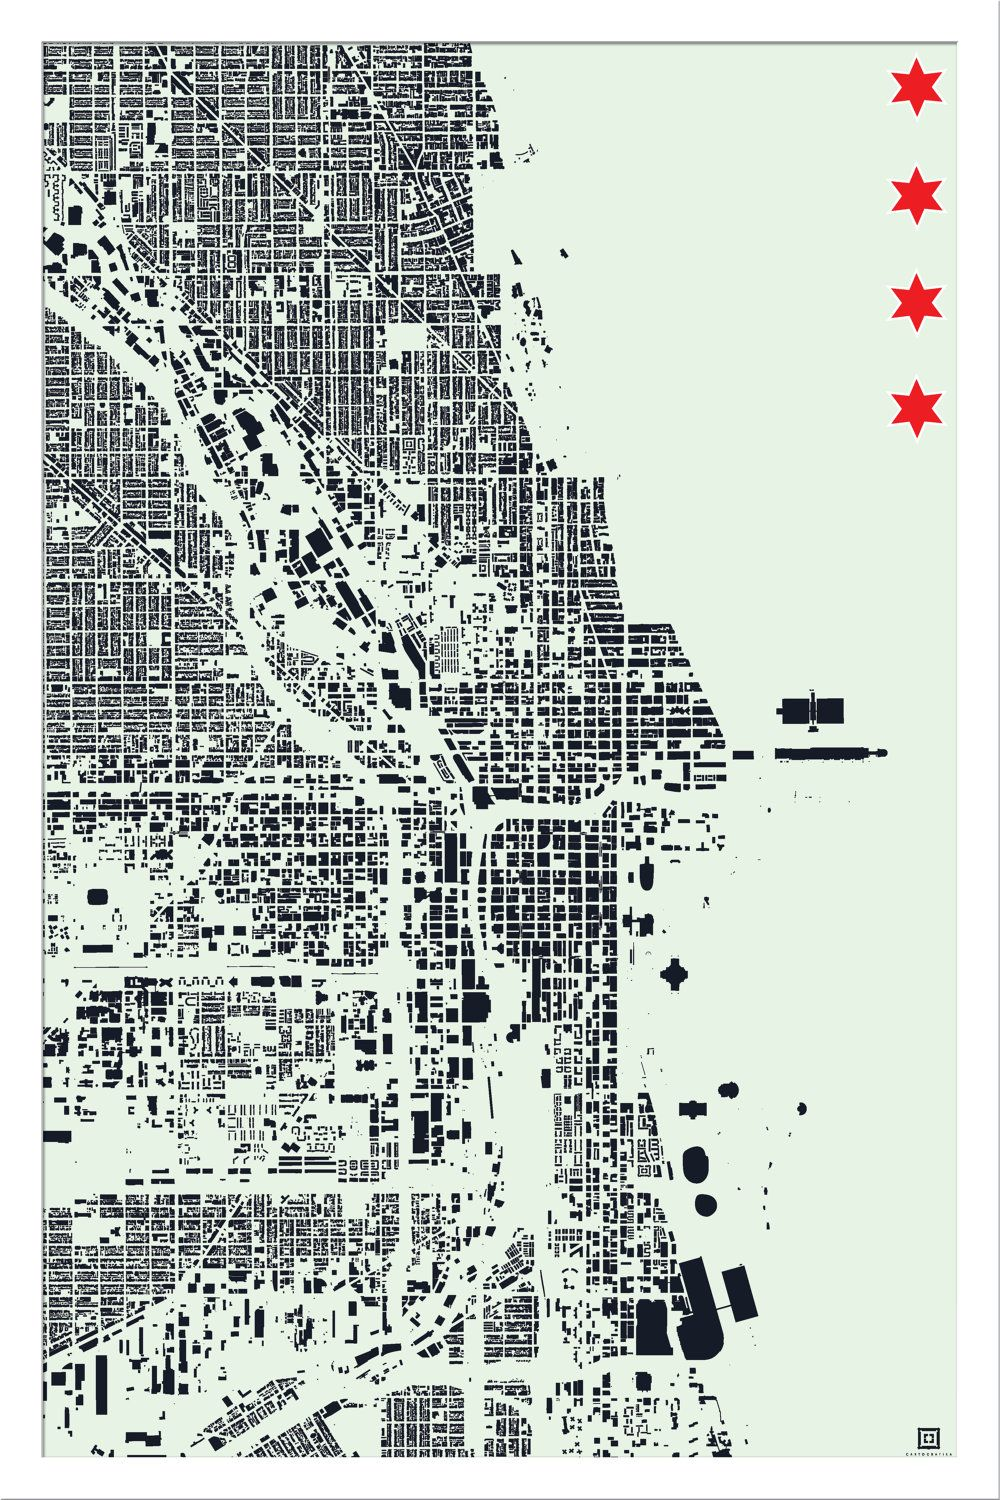 Chicago Building Footprint Map Seafoam  Via Etsy - Chicago map etsy